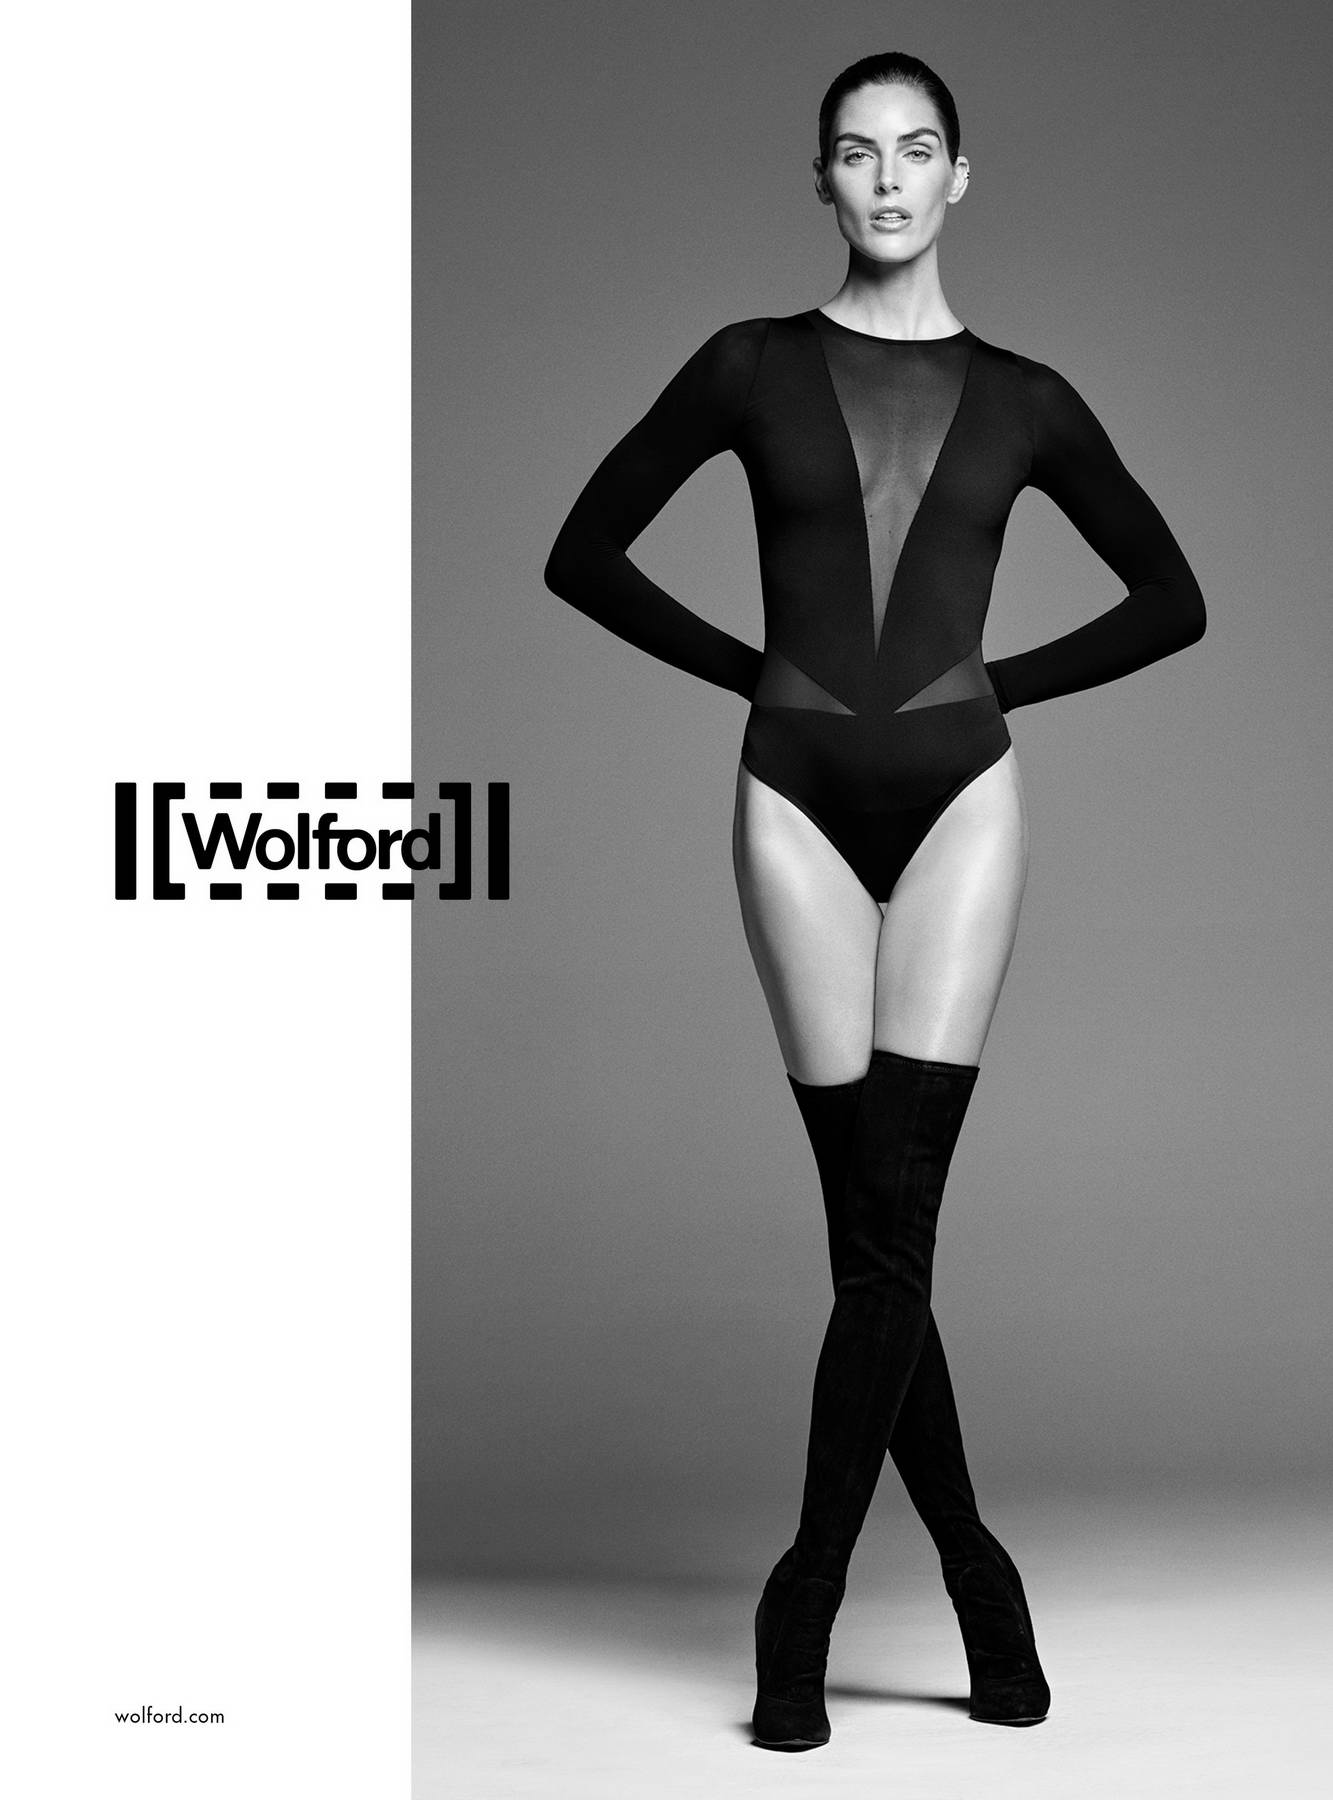 Hilary Rhoda features in Wolford's Spring Summer 2018 Ad Campaign